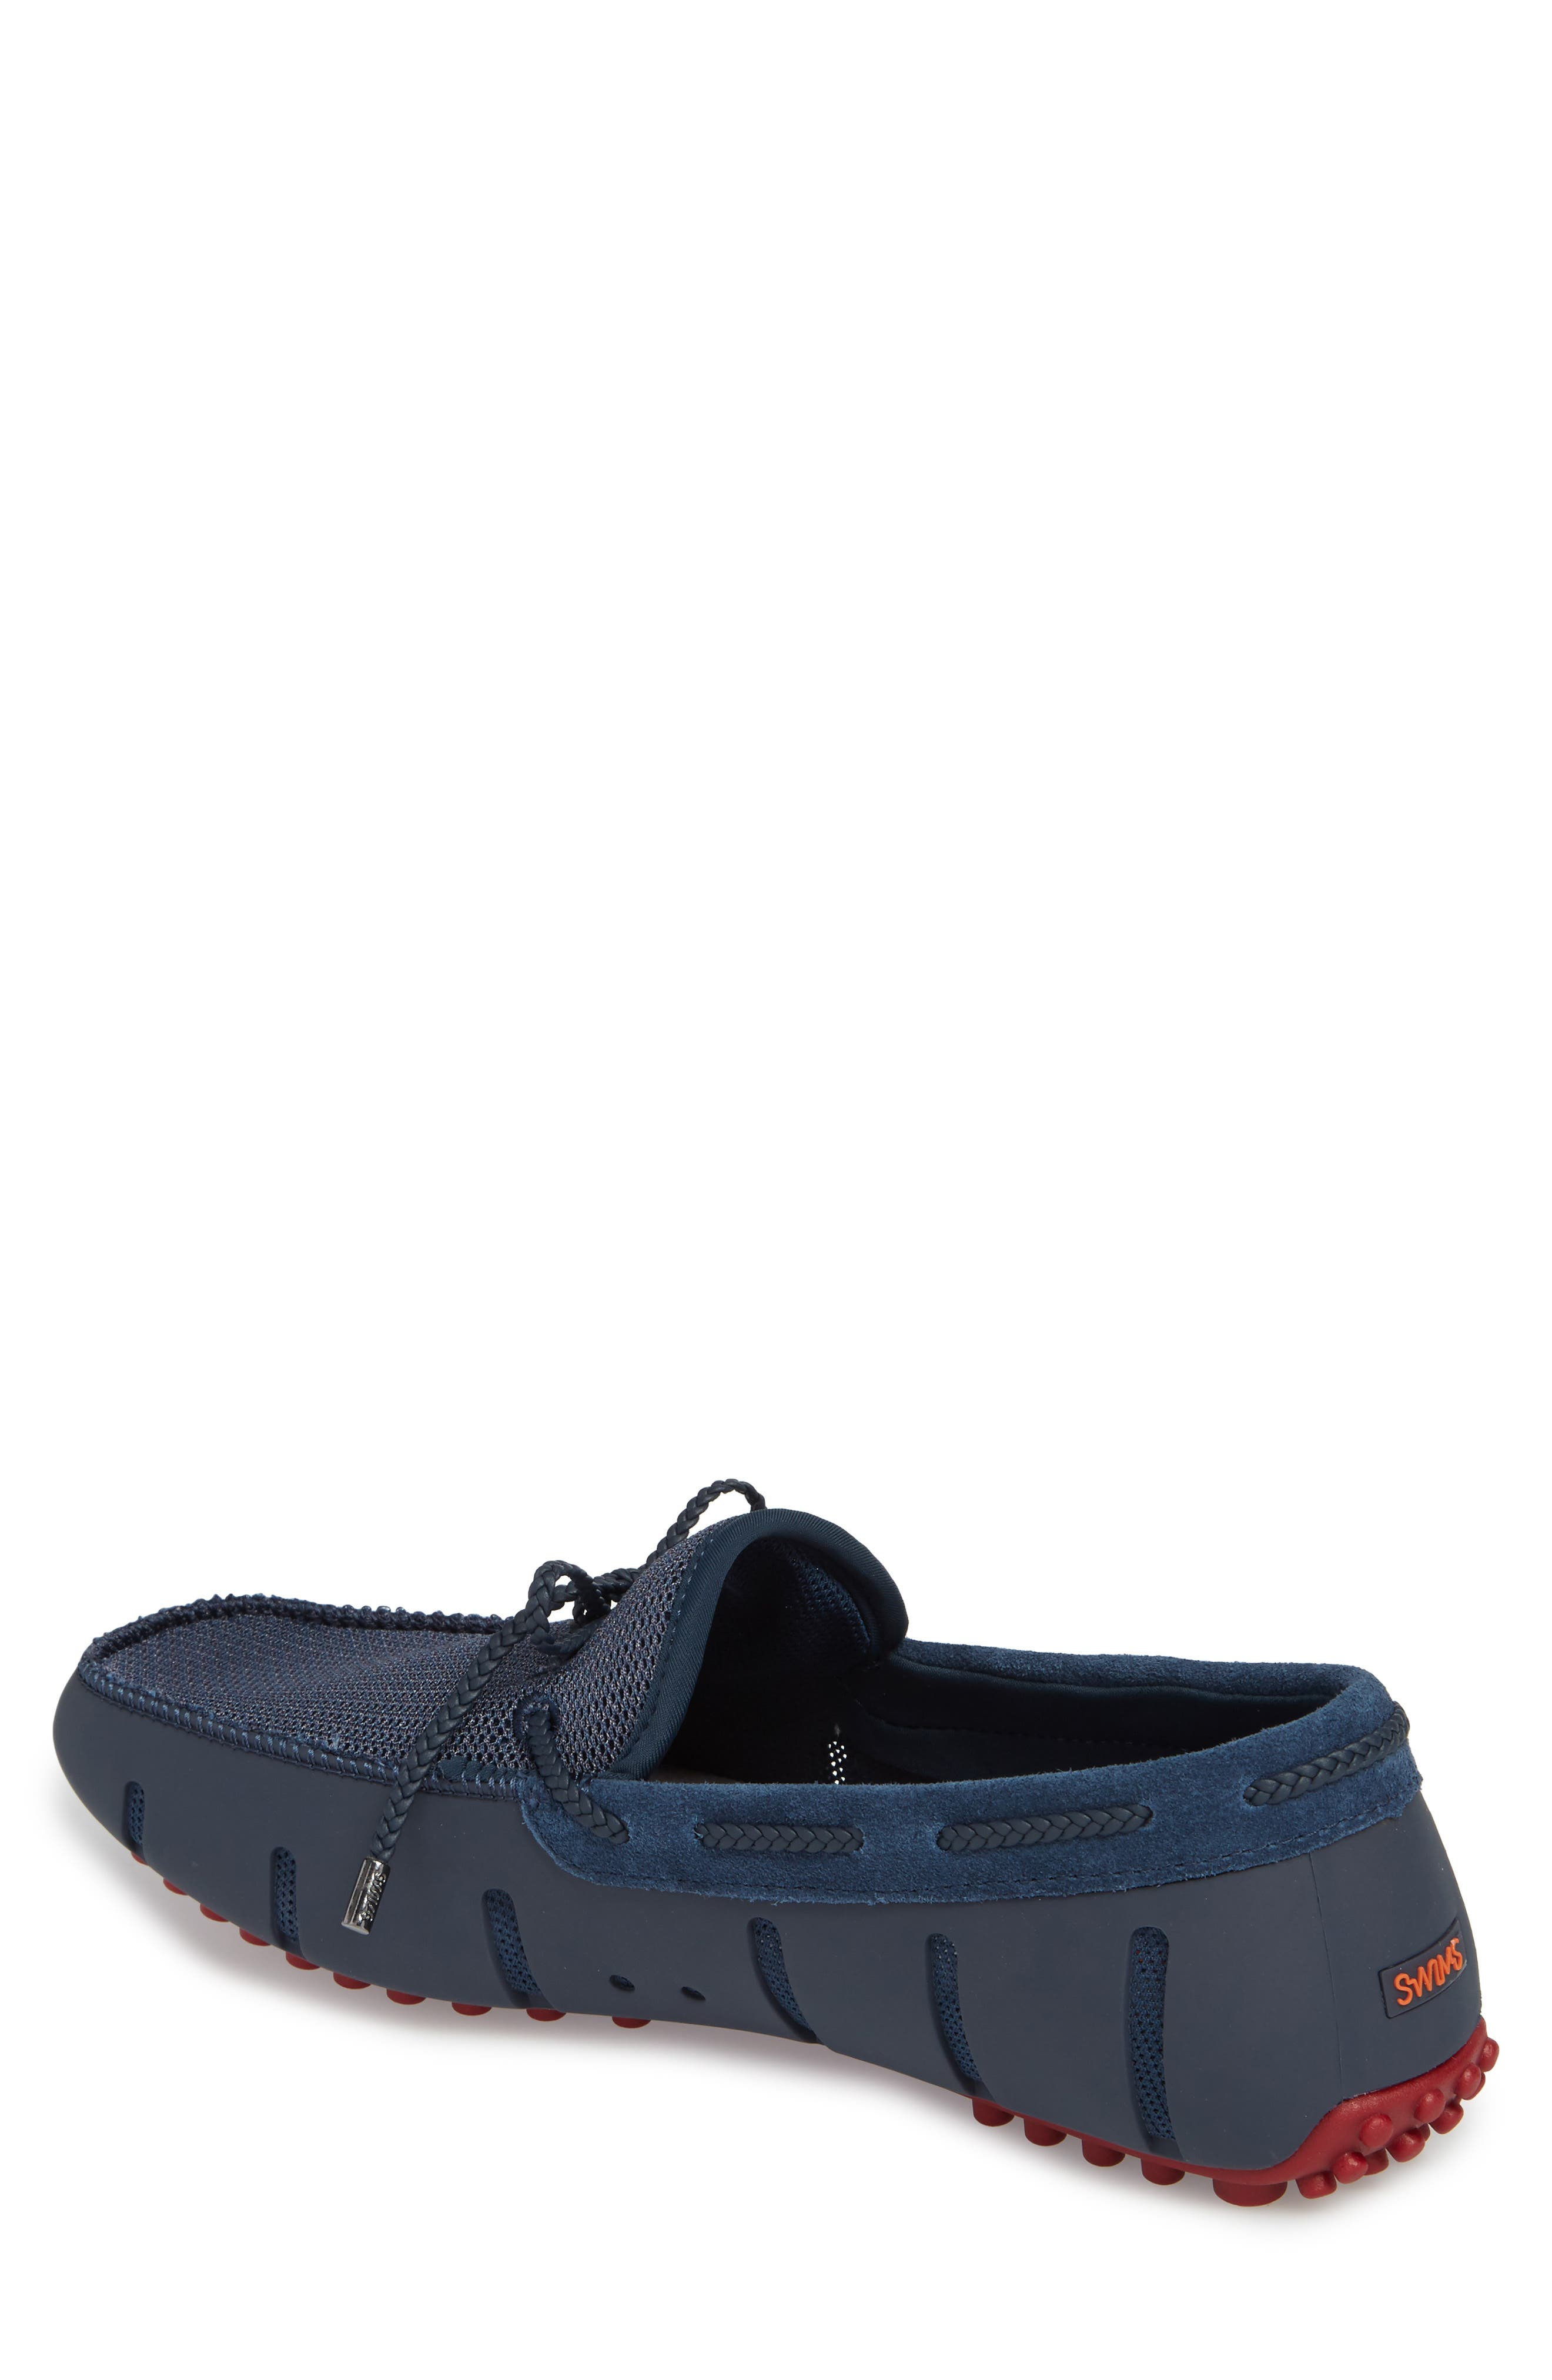 Driving Shoe,                             Alternate thumbnail 2, color,                             Navy / Deep Red